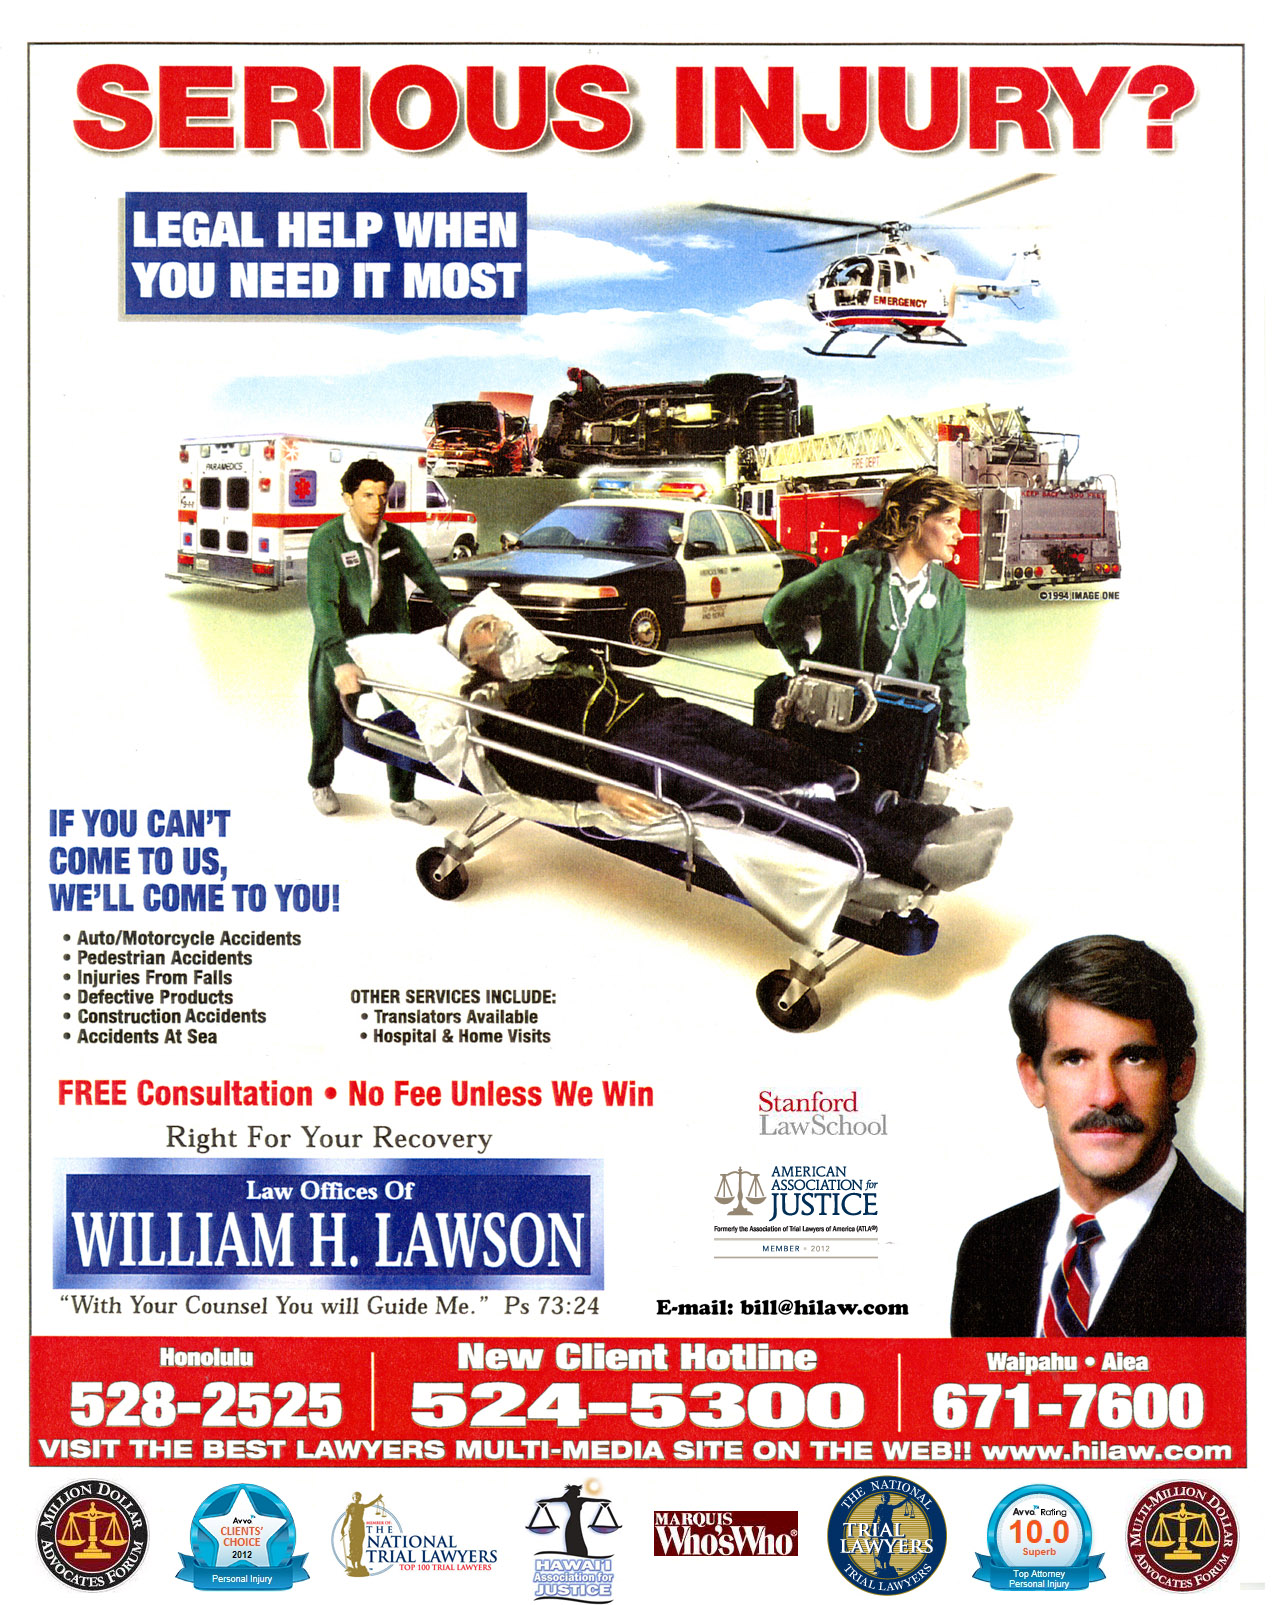 Honolulu Personal Injury Lawyer William H. Lawson